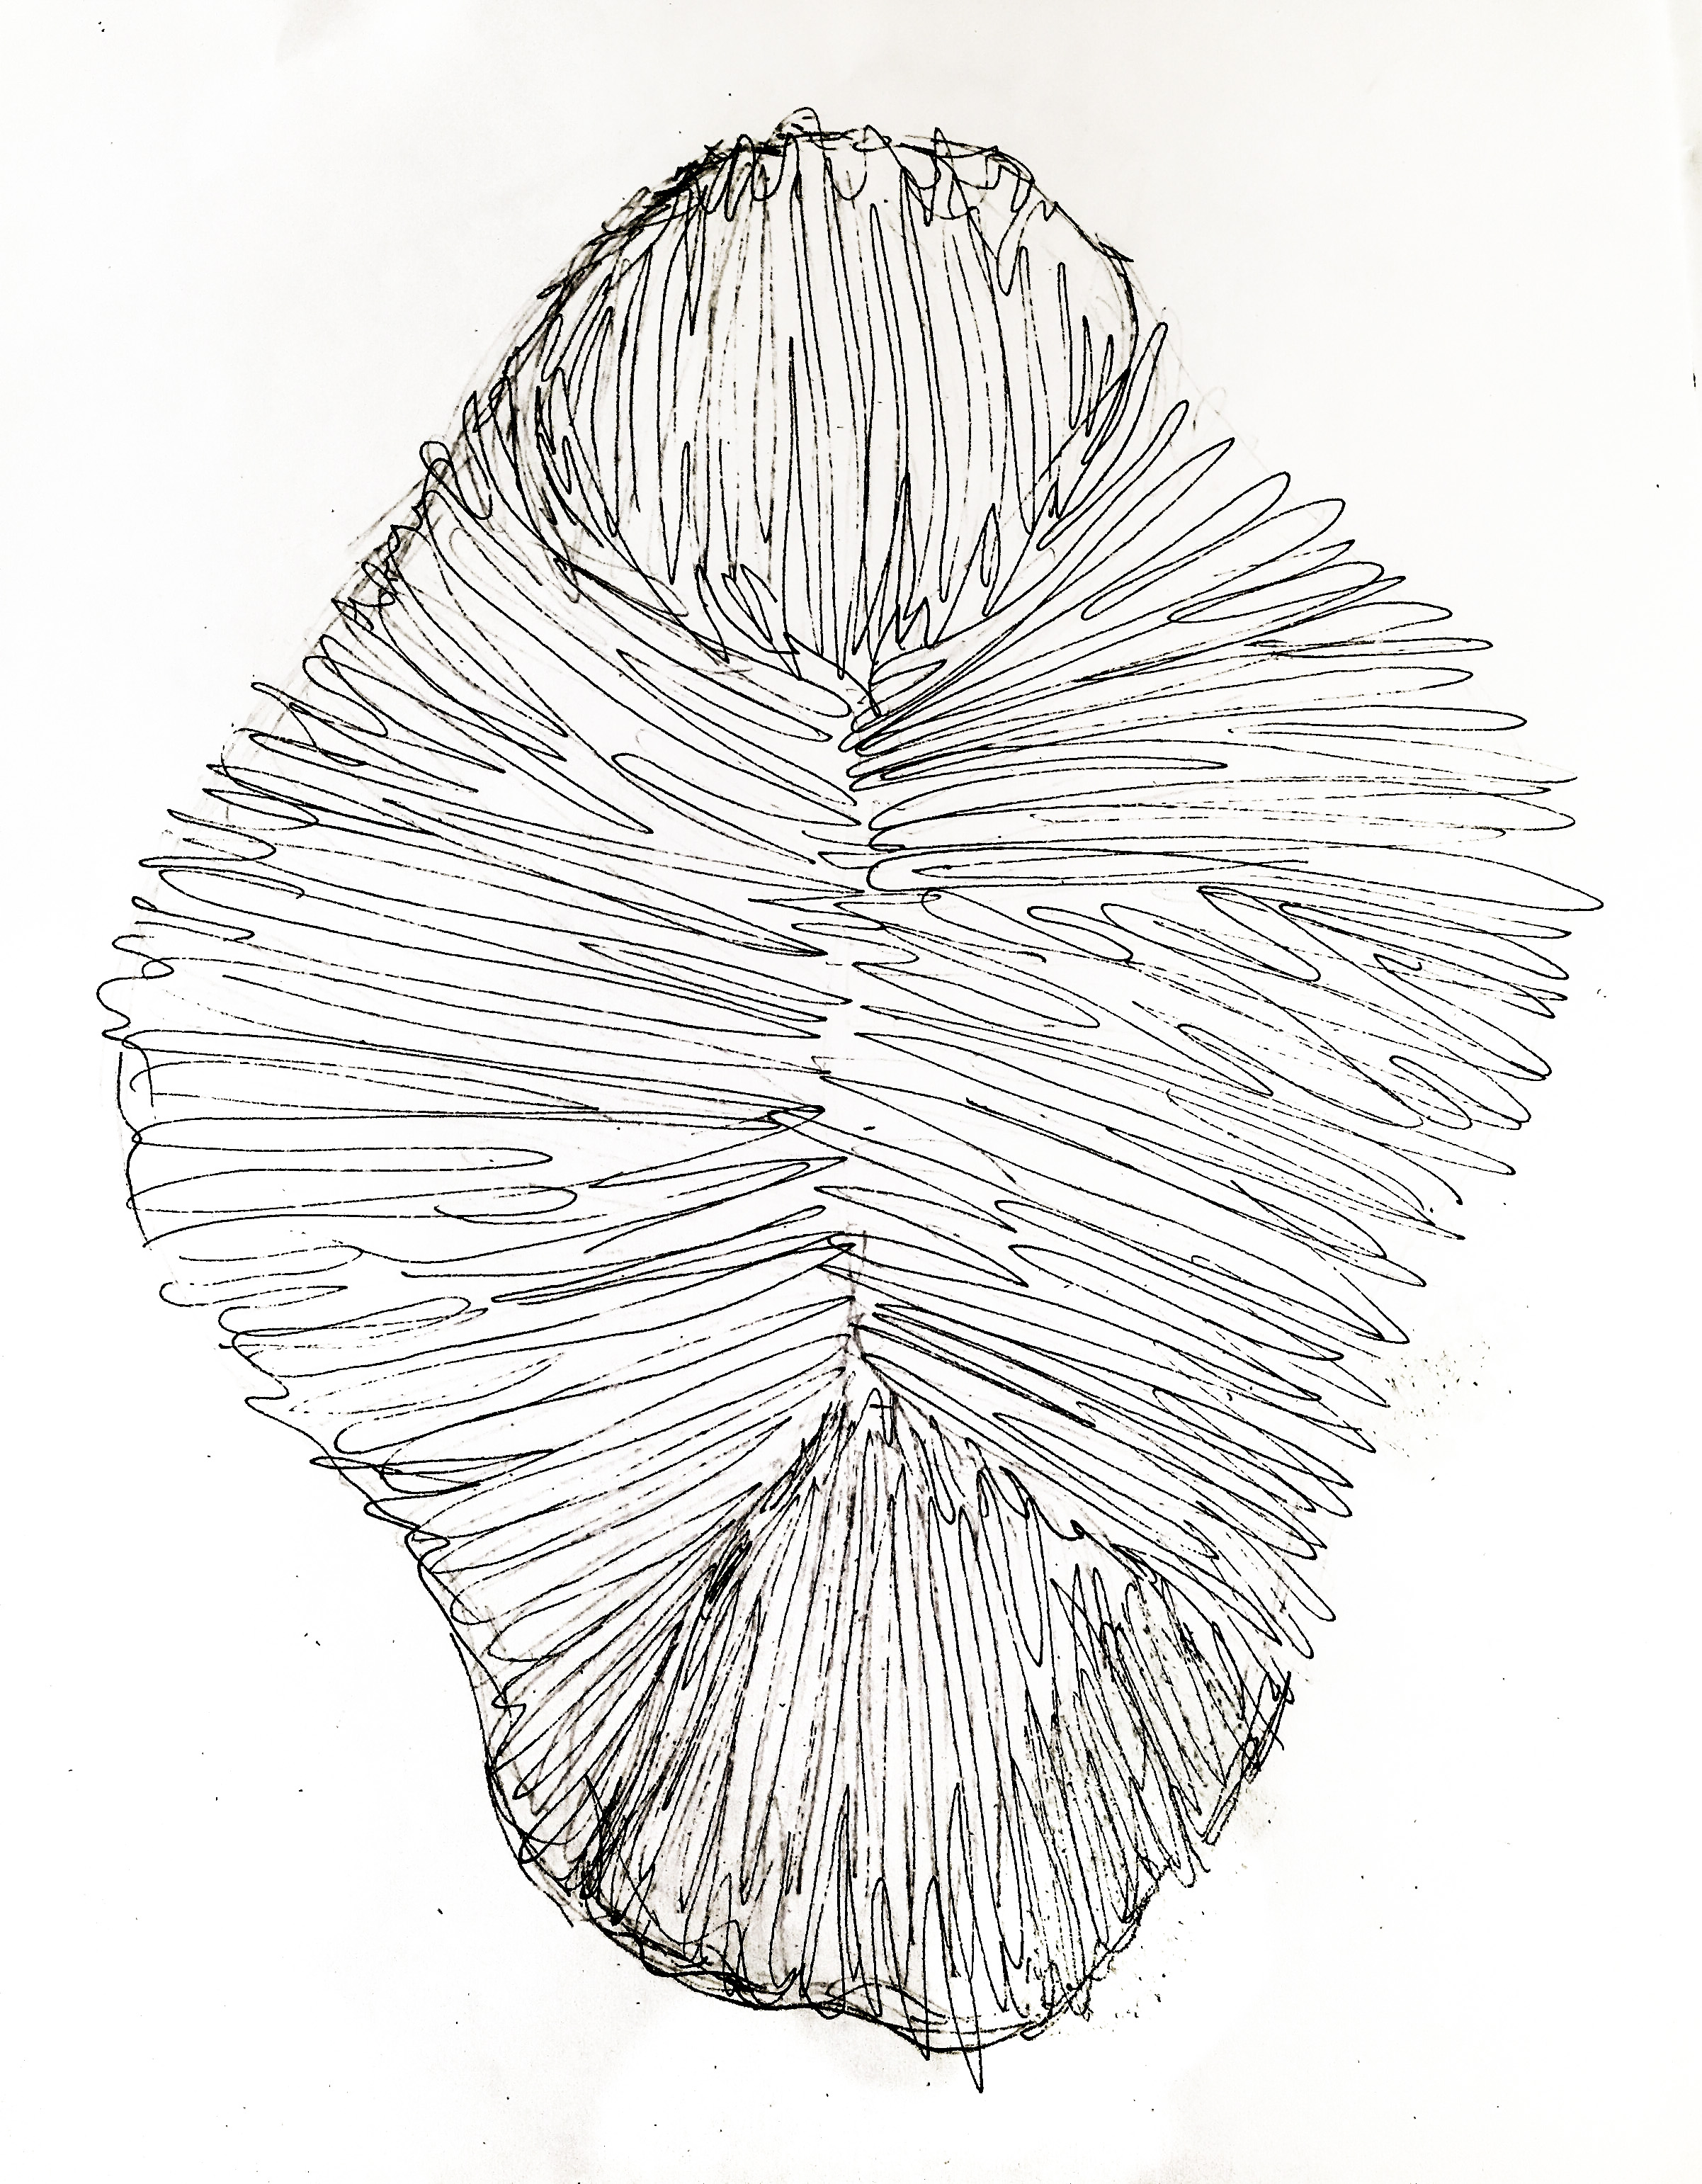 sarah-barnard-design-wall-sconce-prototype-sketch-1.jpg